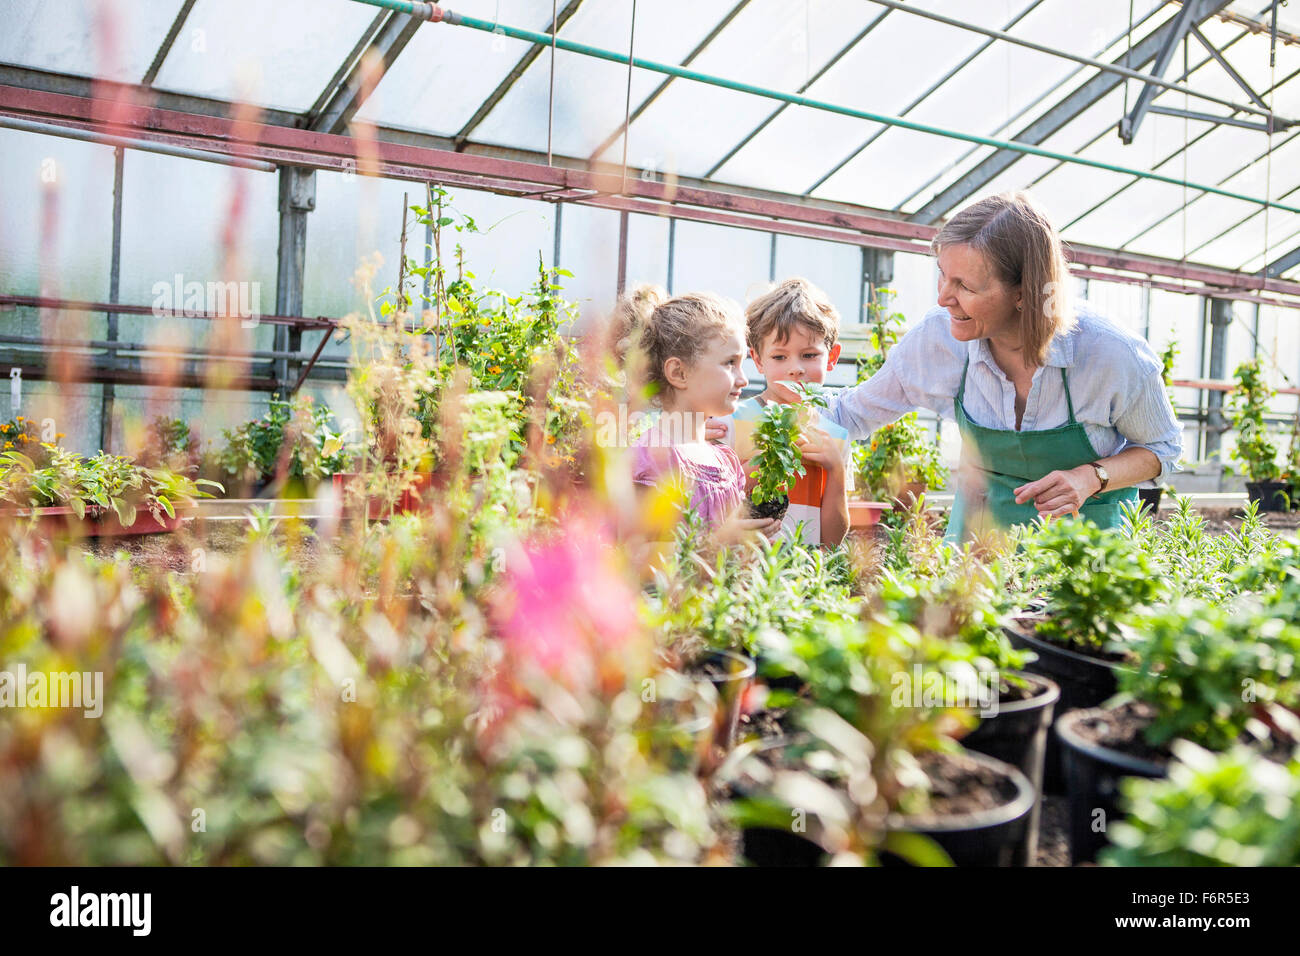 Female gardener and children in greenhouse - Stock Image